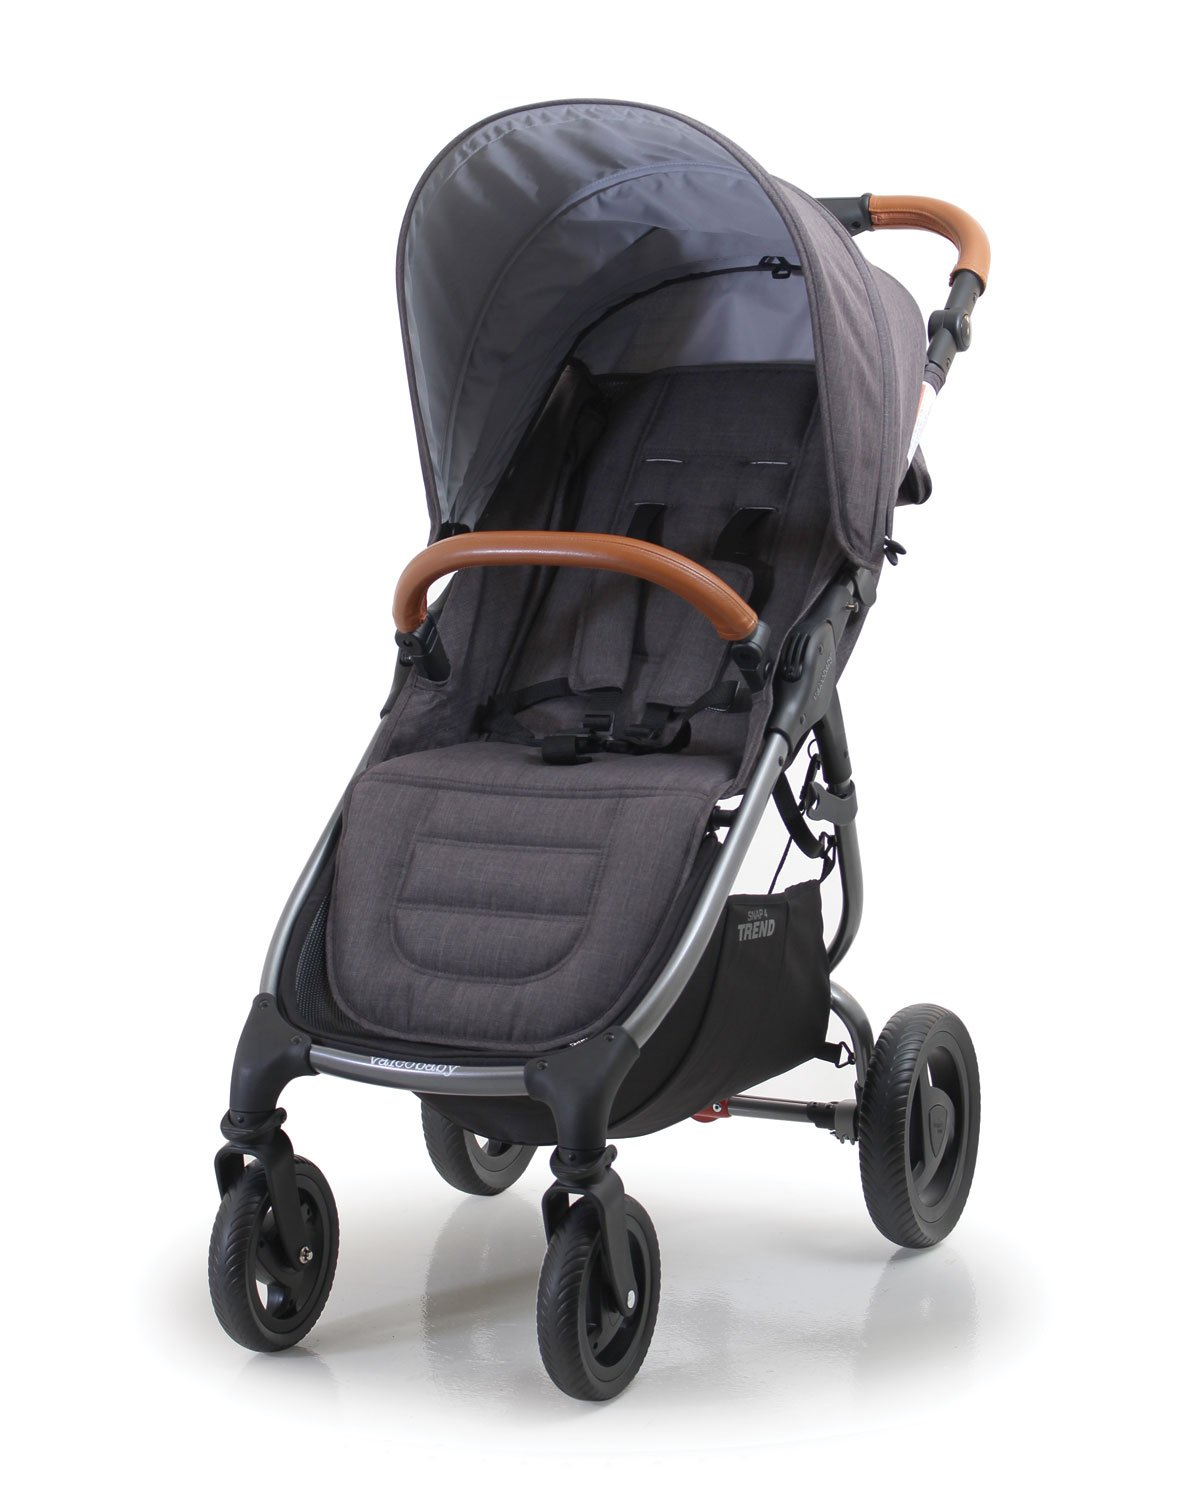 Коляска Valco Baby Snap 4 Trend CharcoalКоляски прогулочные<br><br>